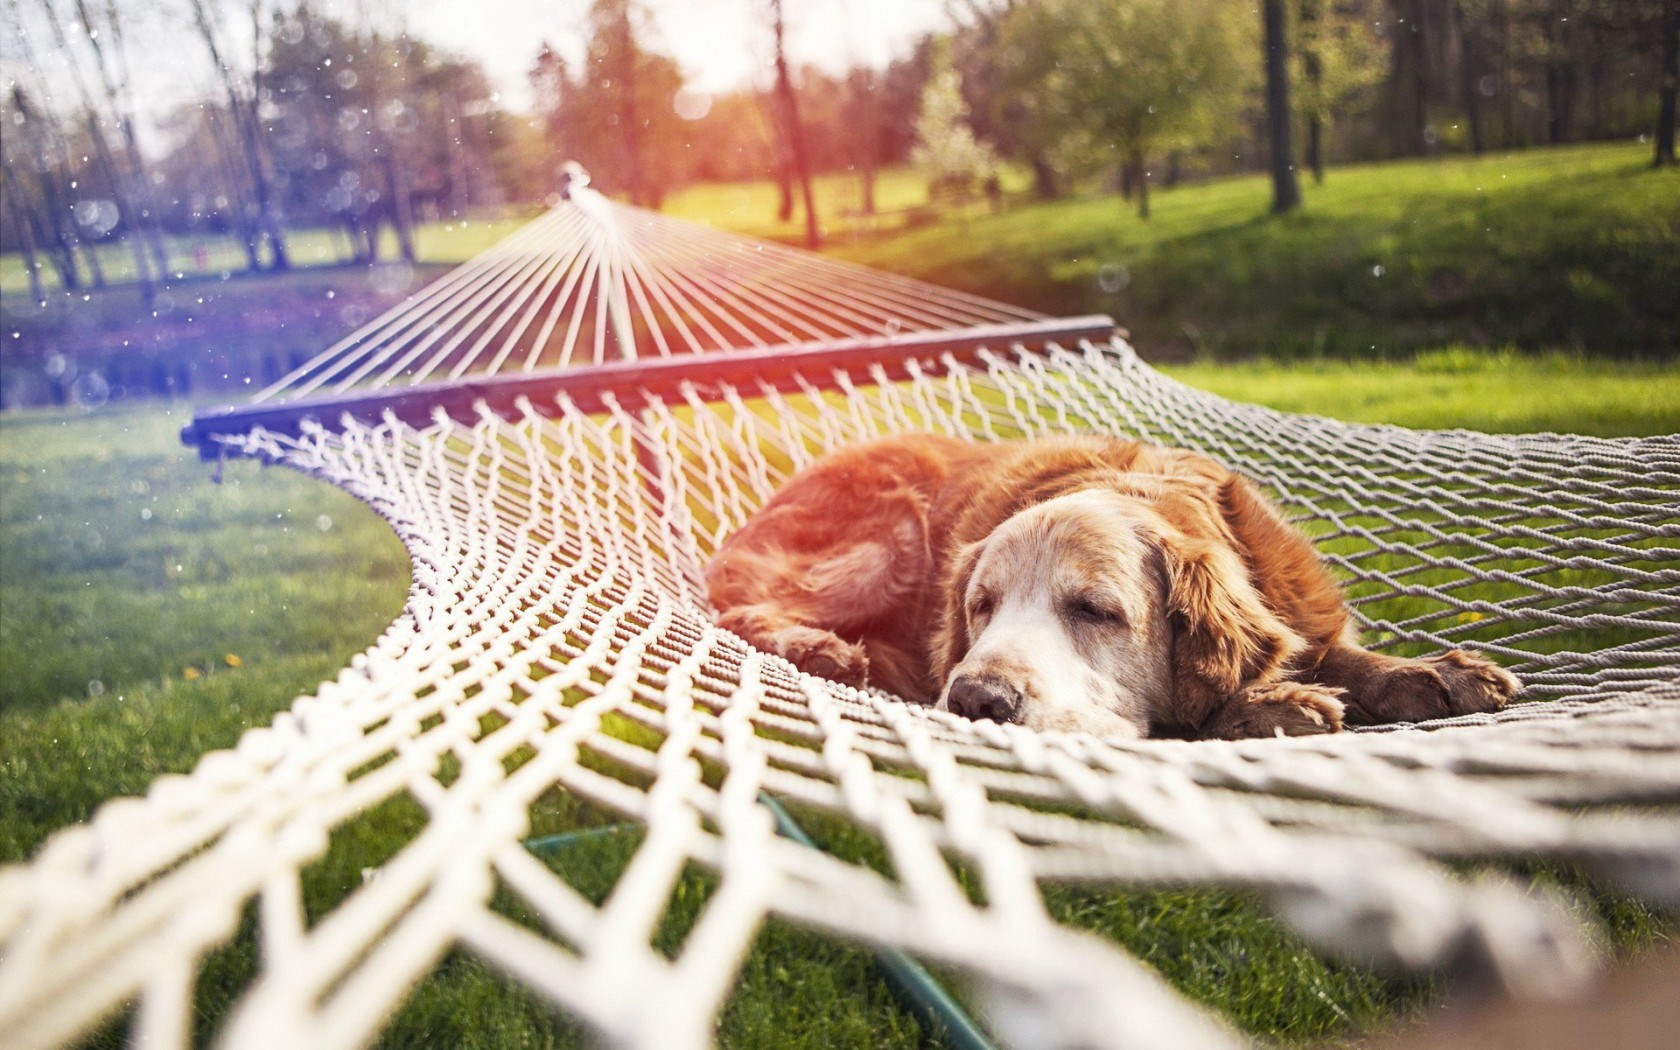 Park Grass Nature Hammock Dog Rest